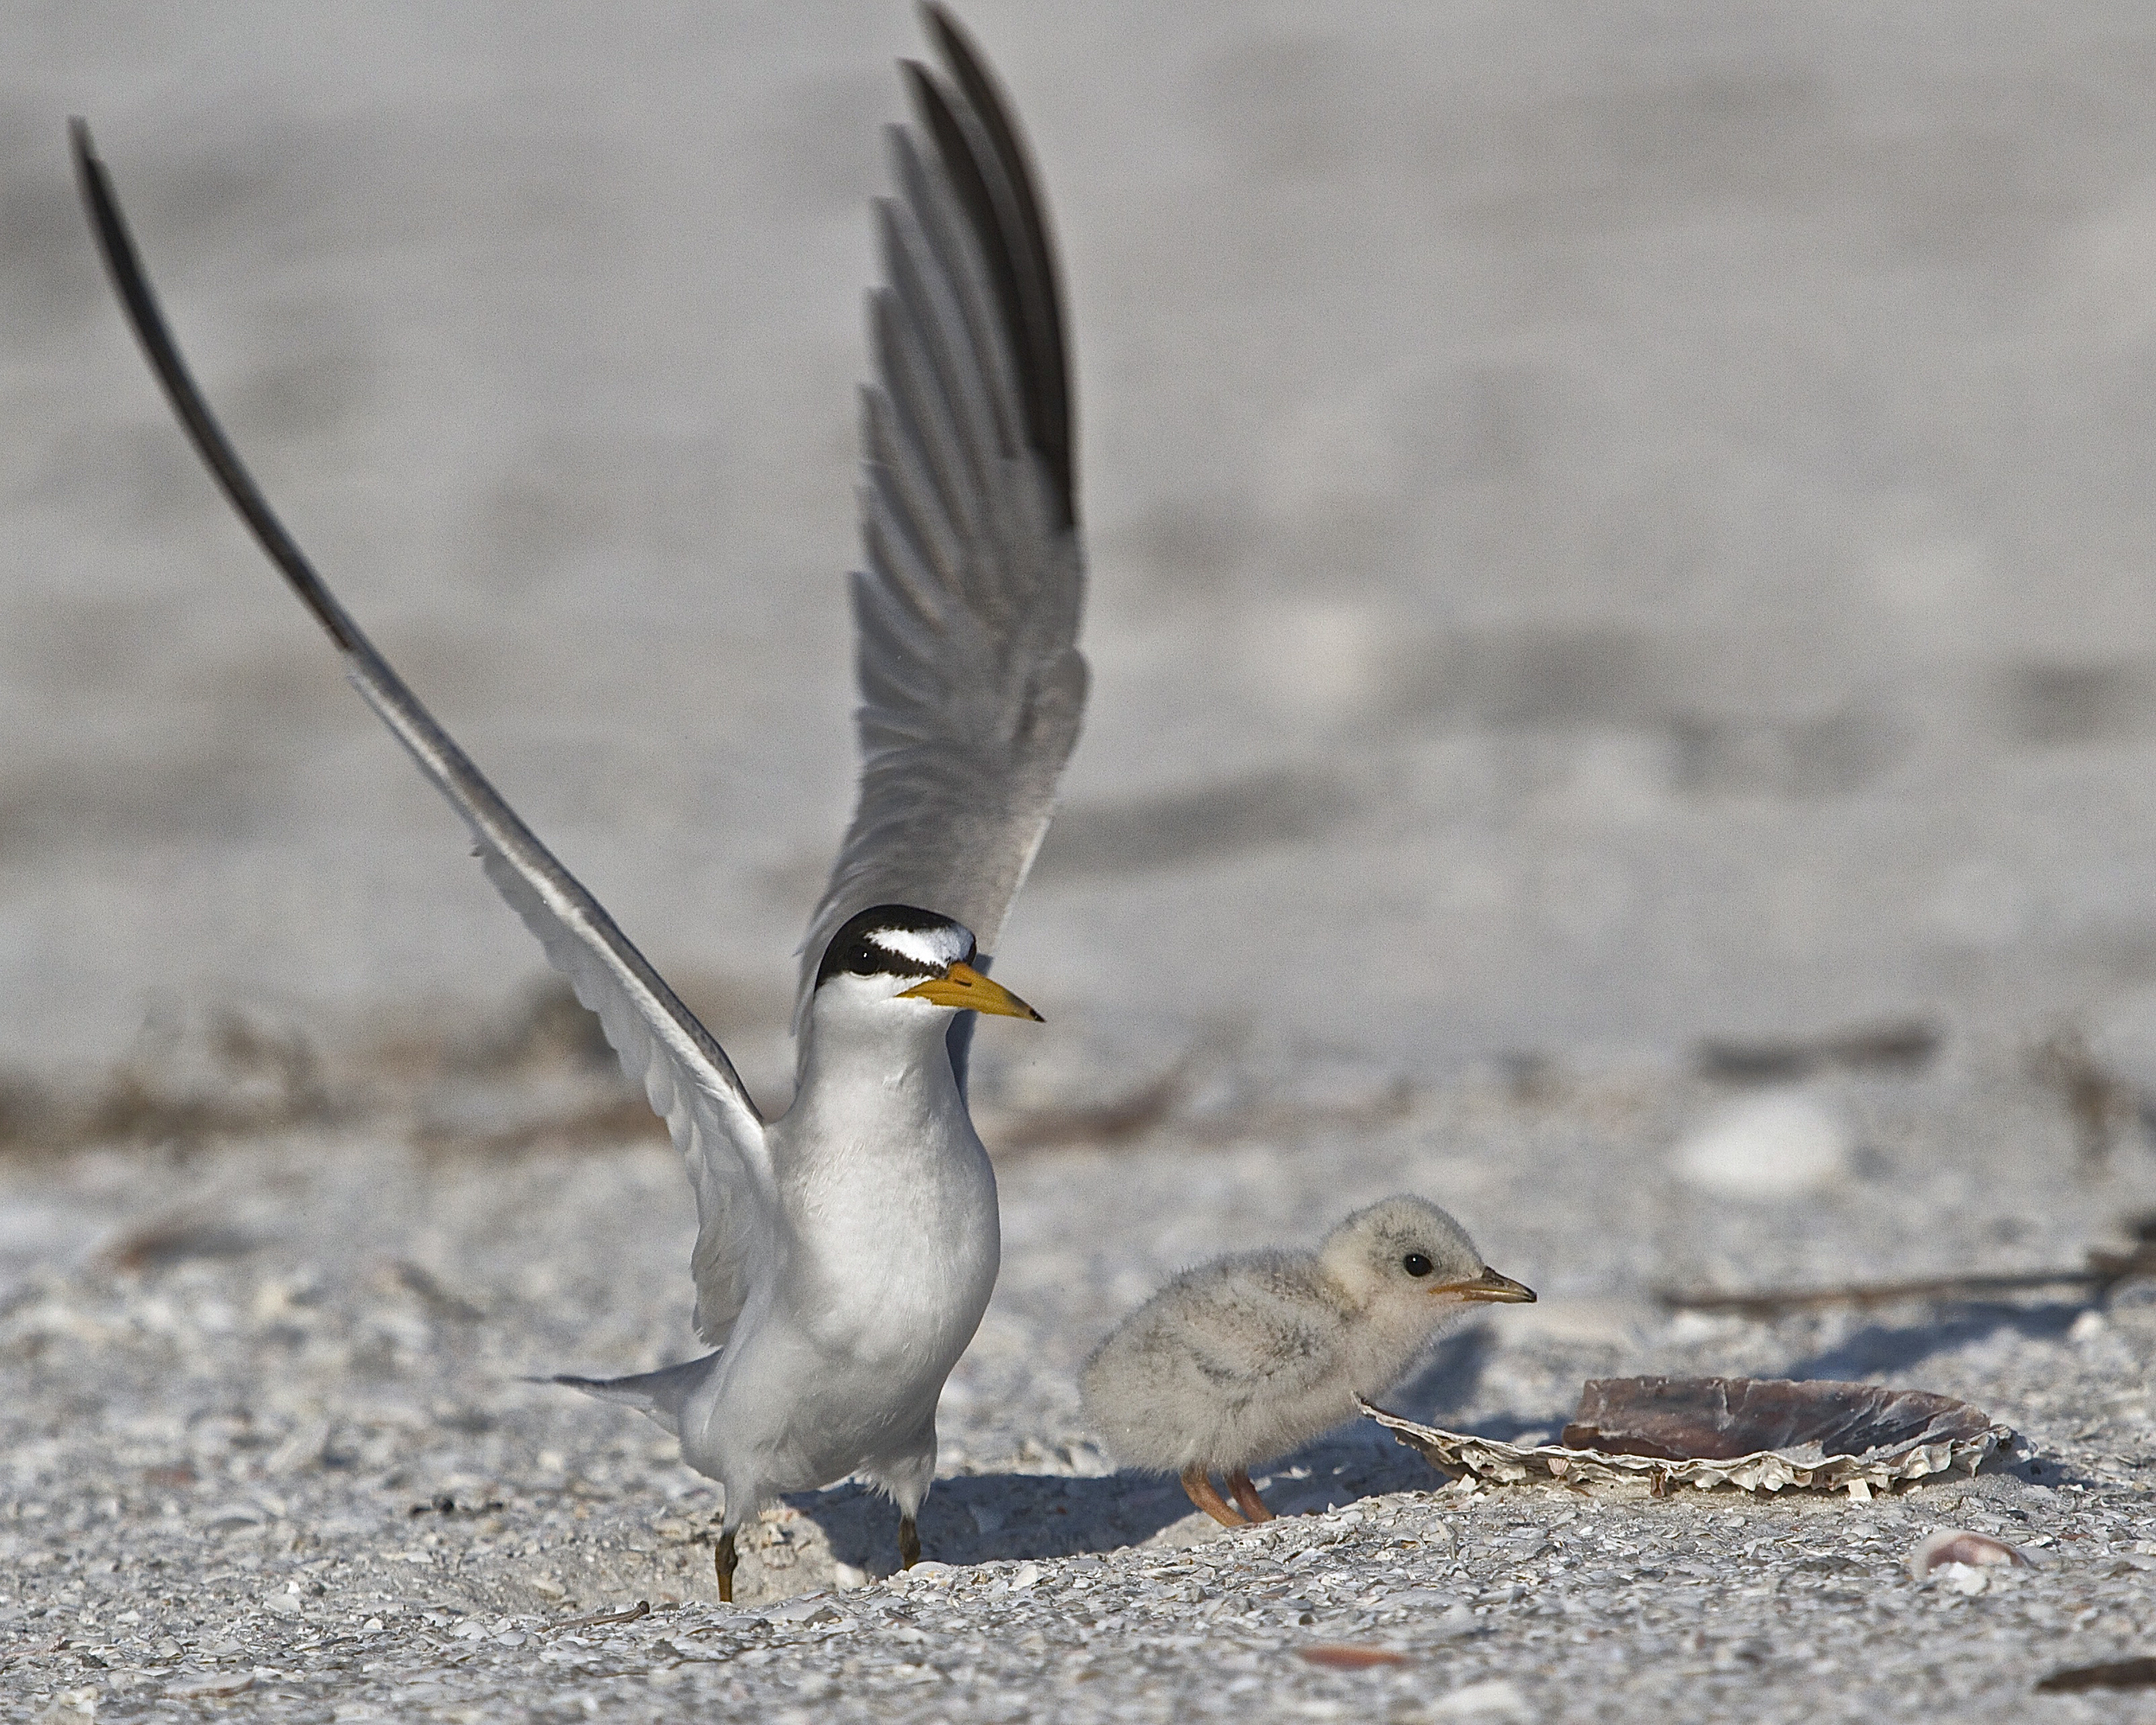 Least Tern alerts as we approach the nest and hatchling.